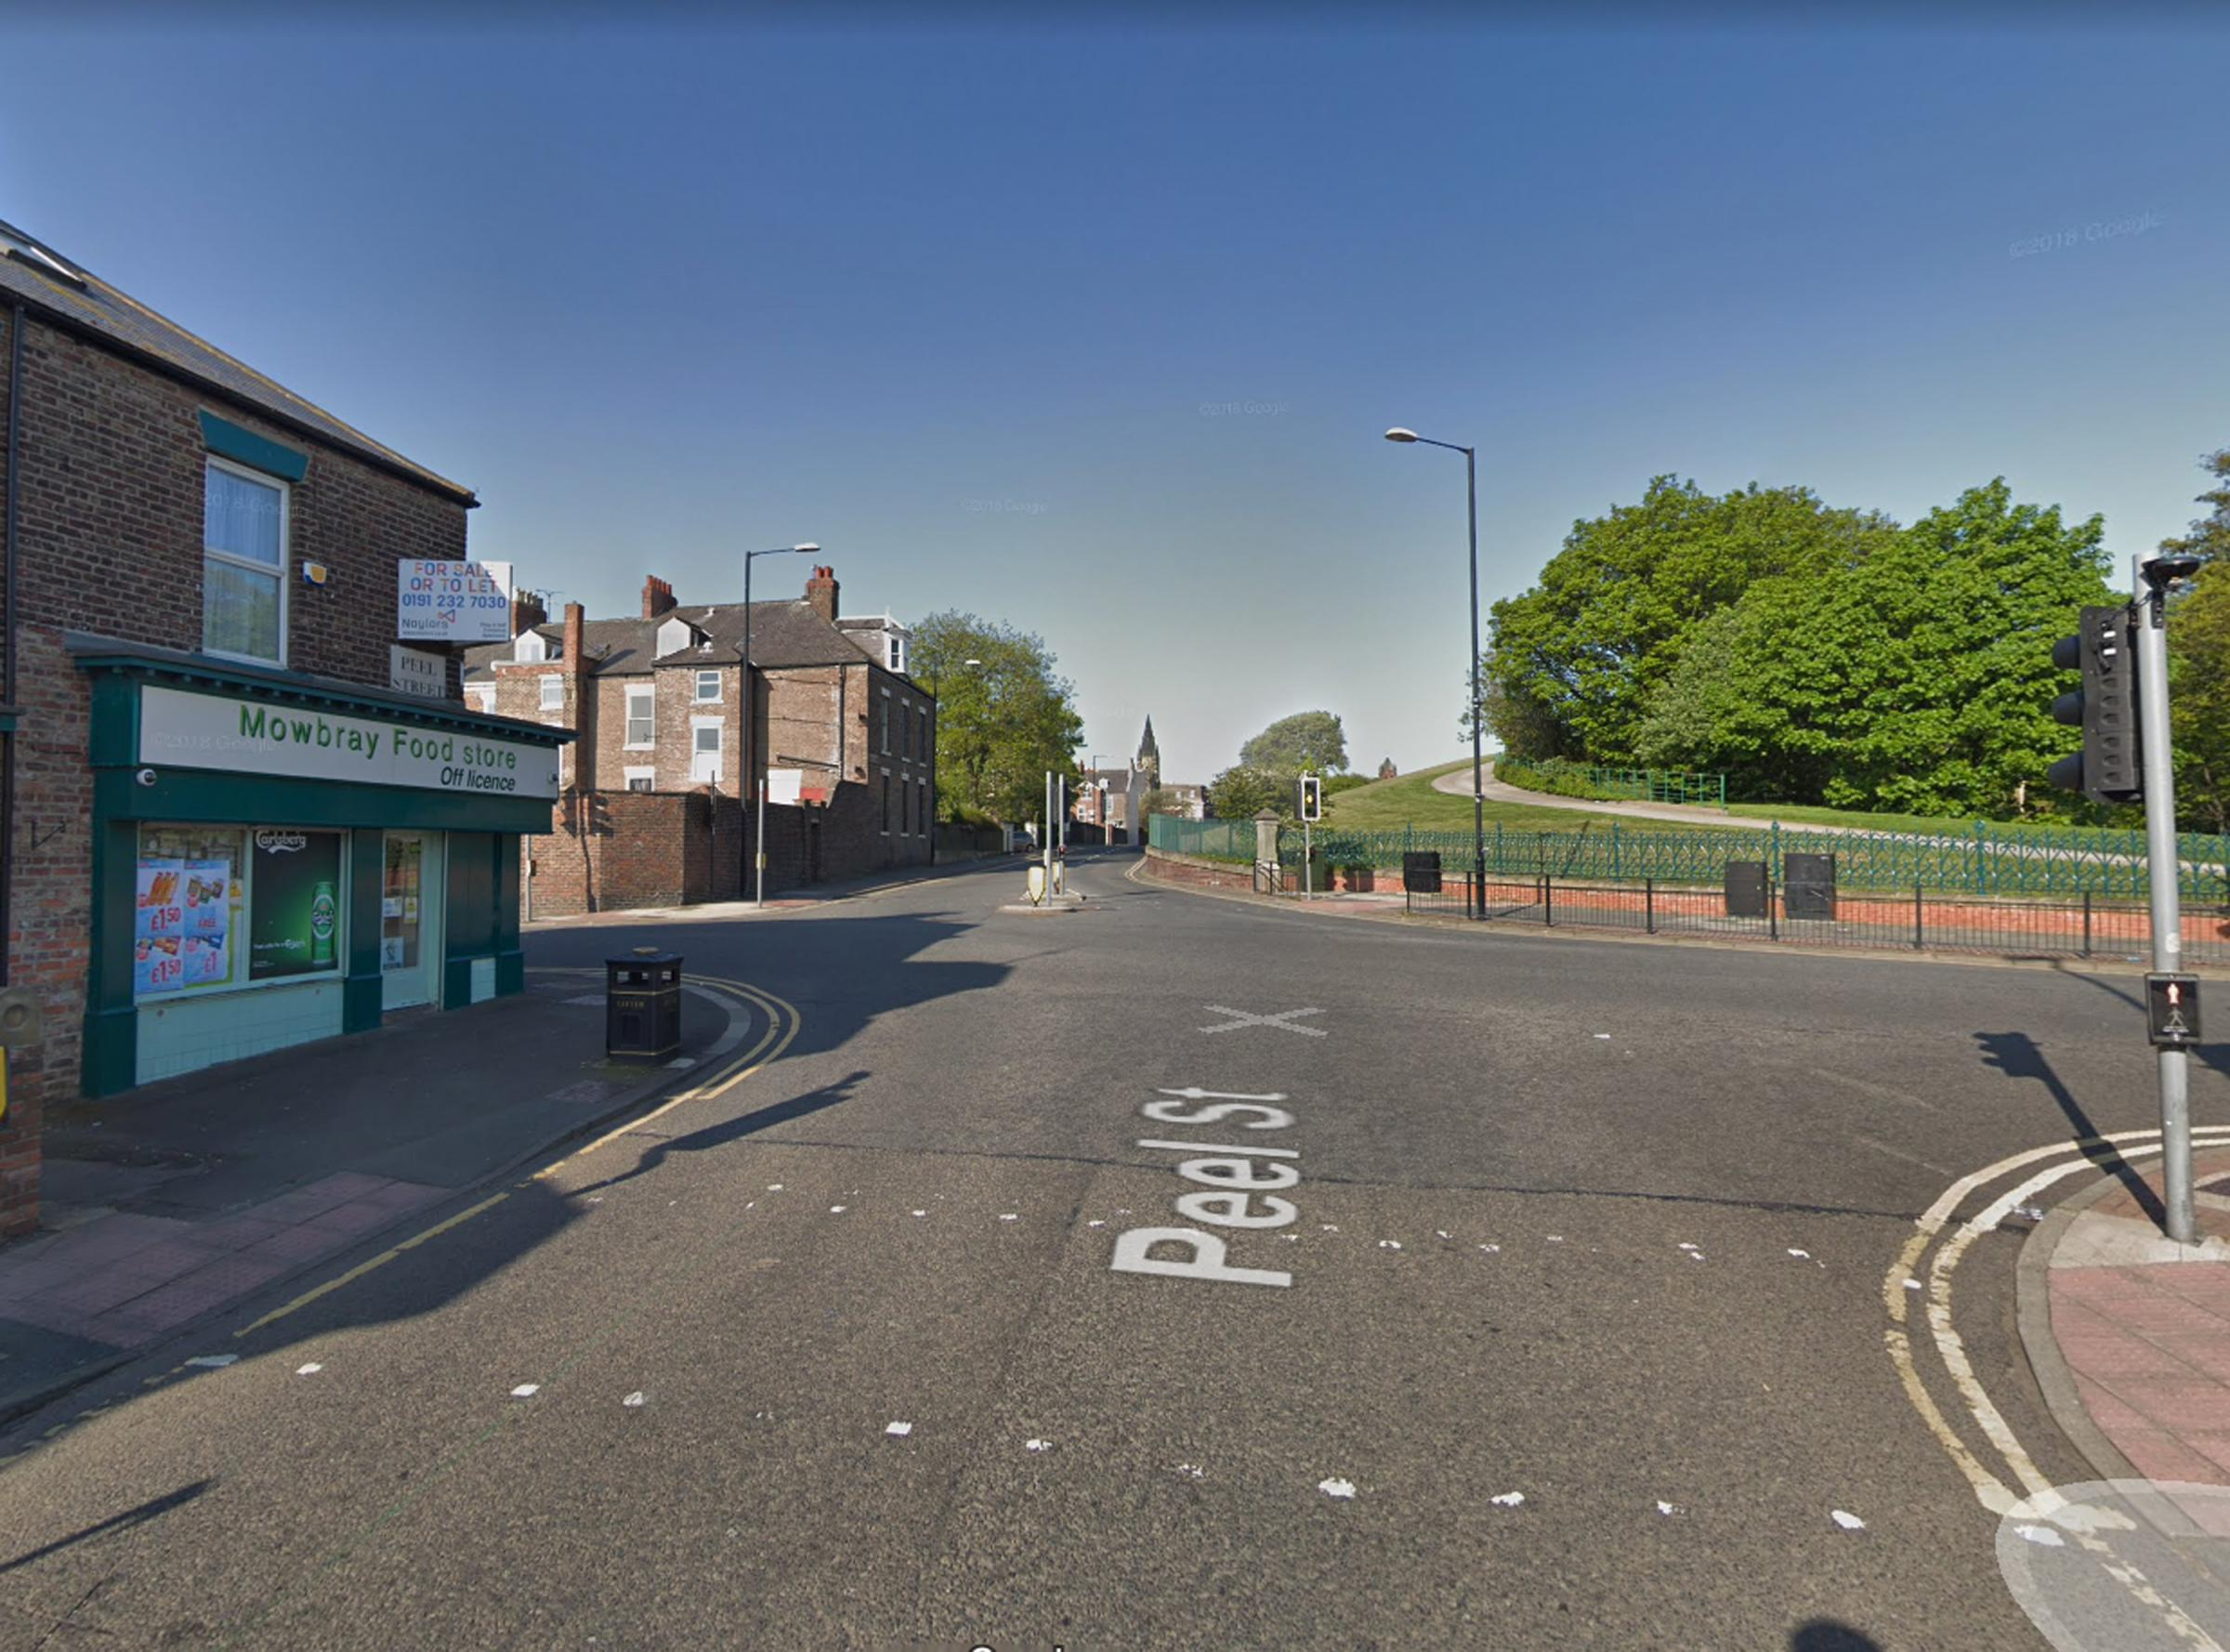 Pedestrian, 84, dies after being knocked over by a bus in Sunderland